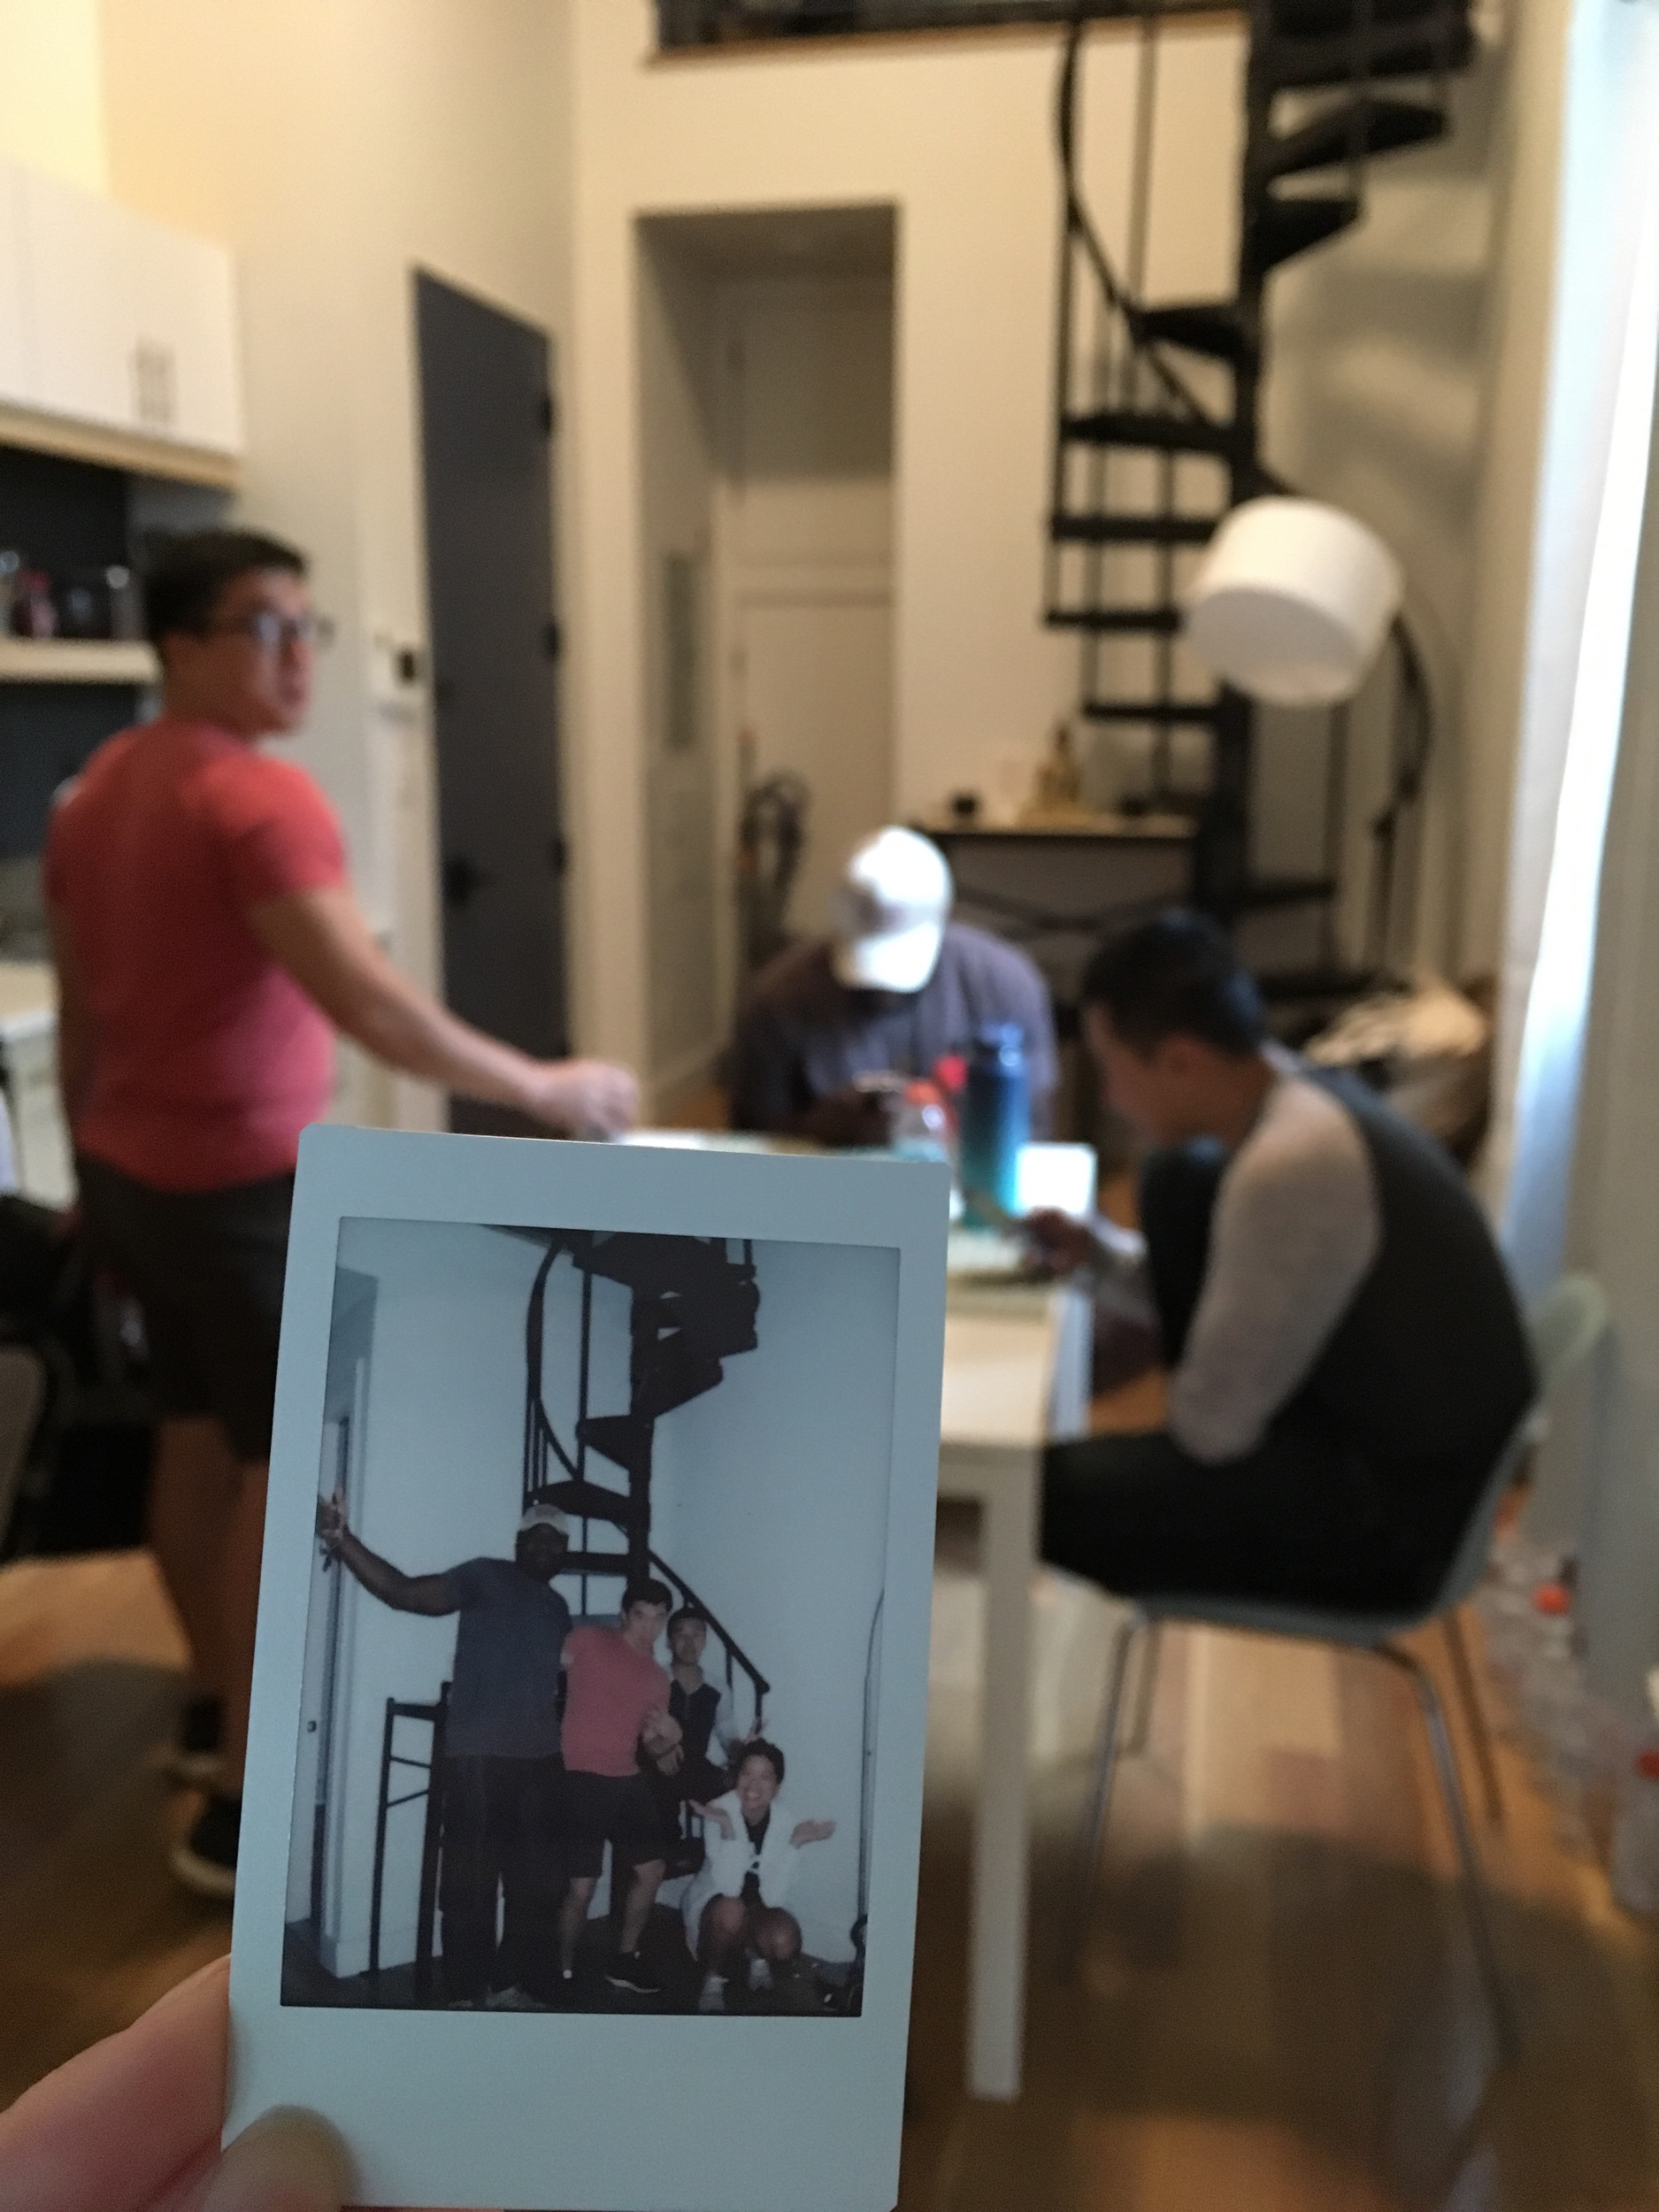 Instax at the house